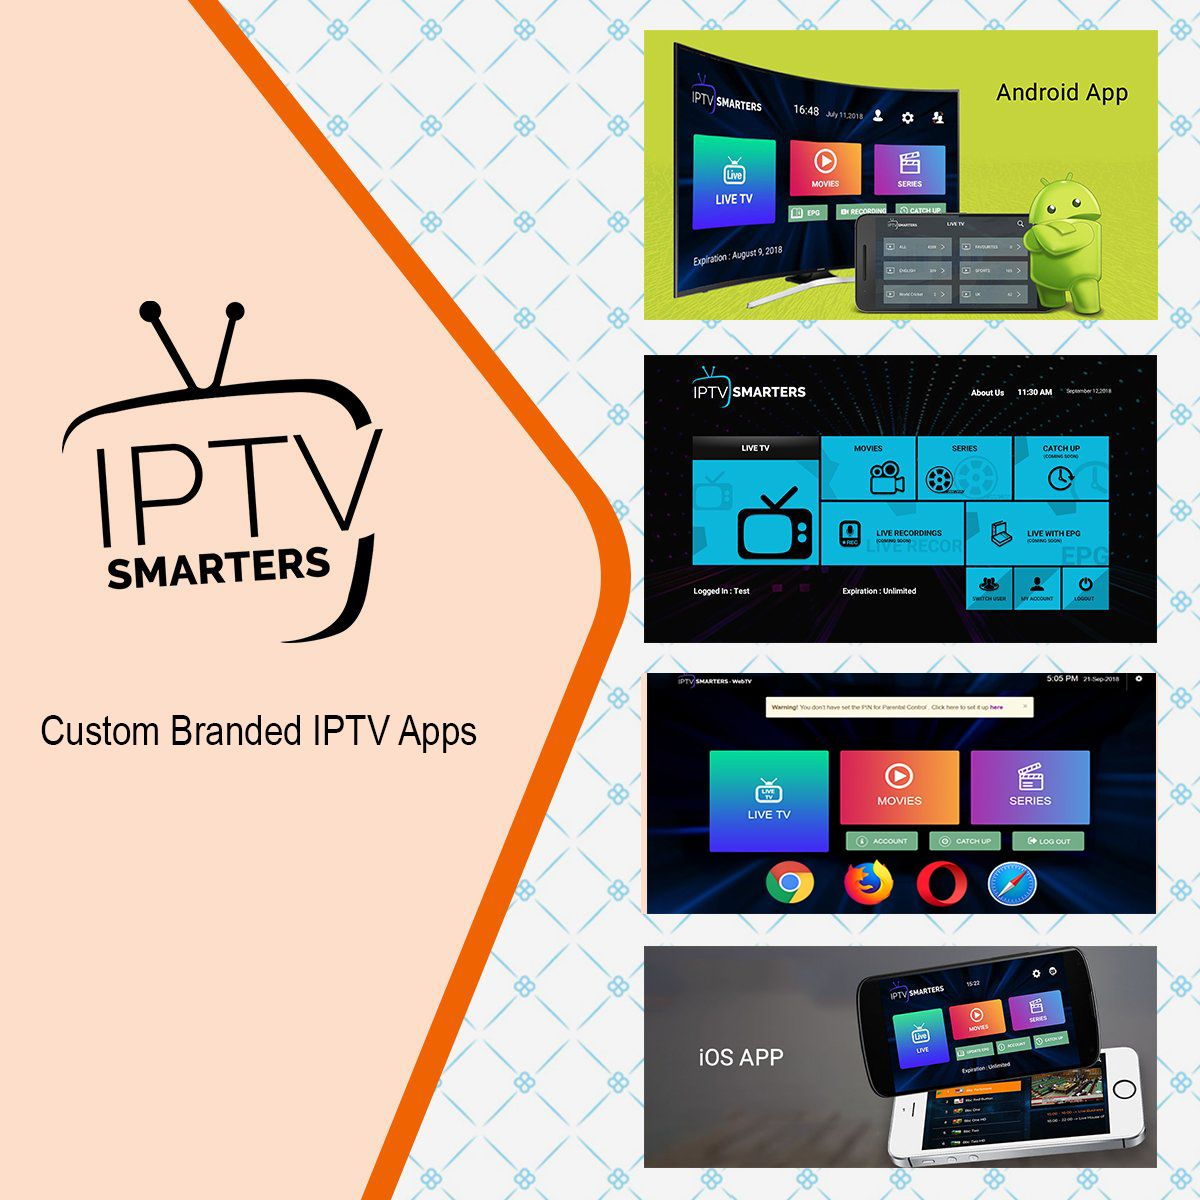 Are you IPTV Services Provider? If you want IPTV Apps with